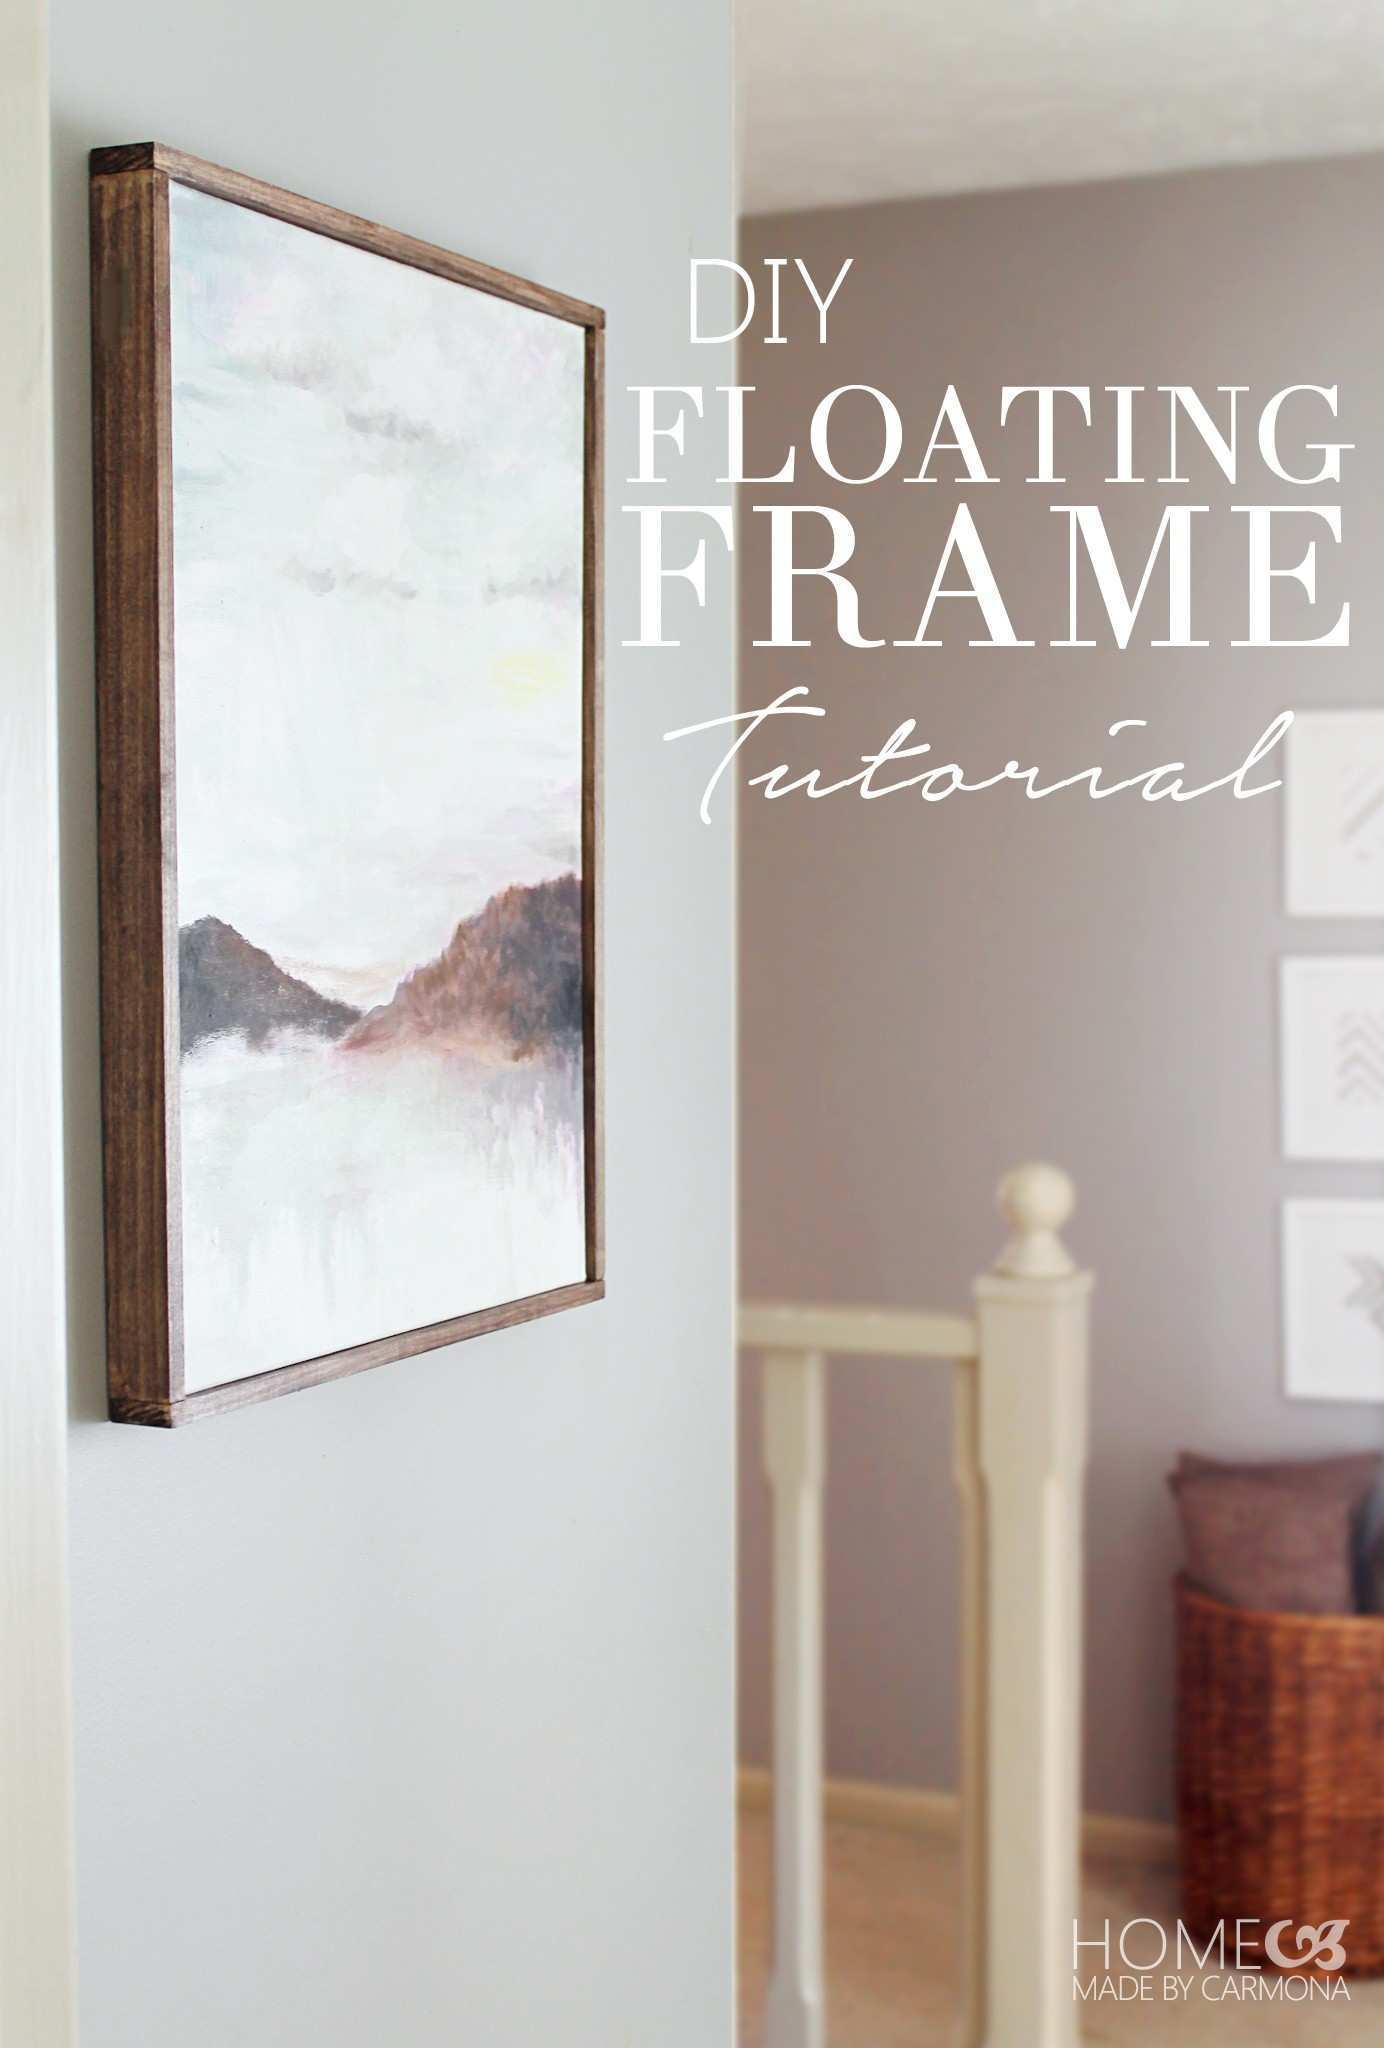 Picture Frame Moulding On Walls Awesome Diy Floating Frame Tutorial ...